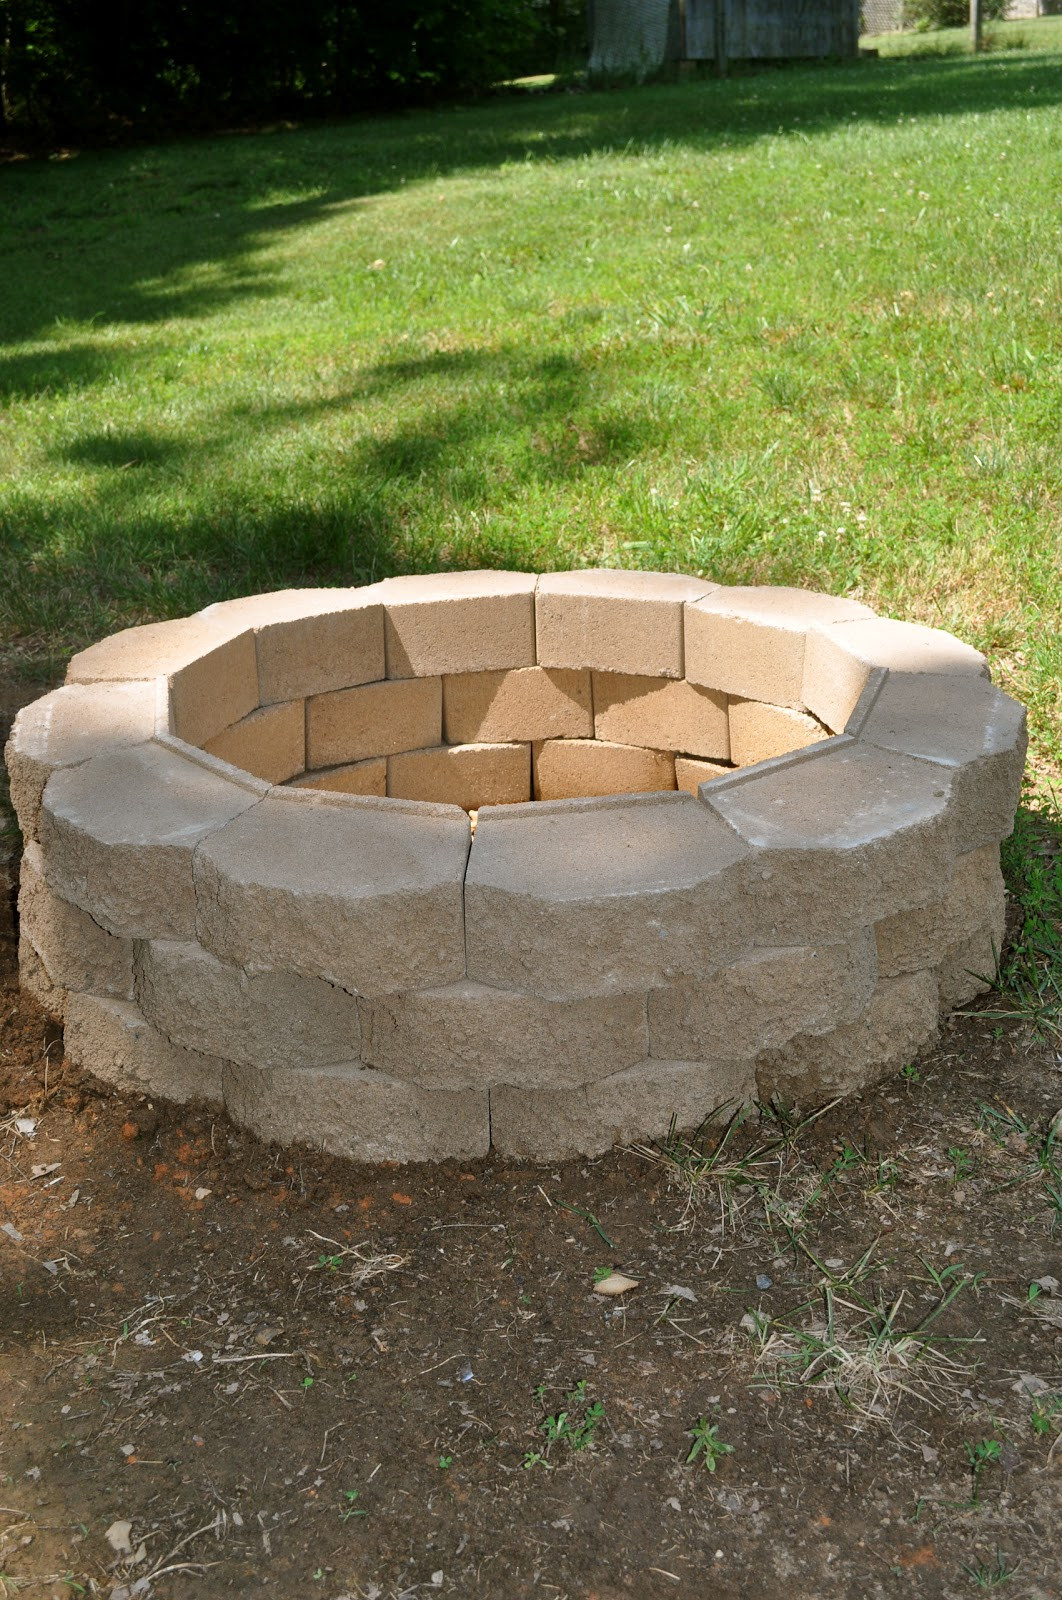 Best ideas about Backyard Fire Pit . Save or Pin Salty Tales DIY Fire Pit Now.